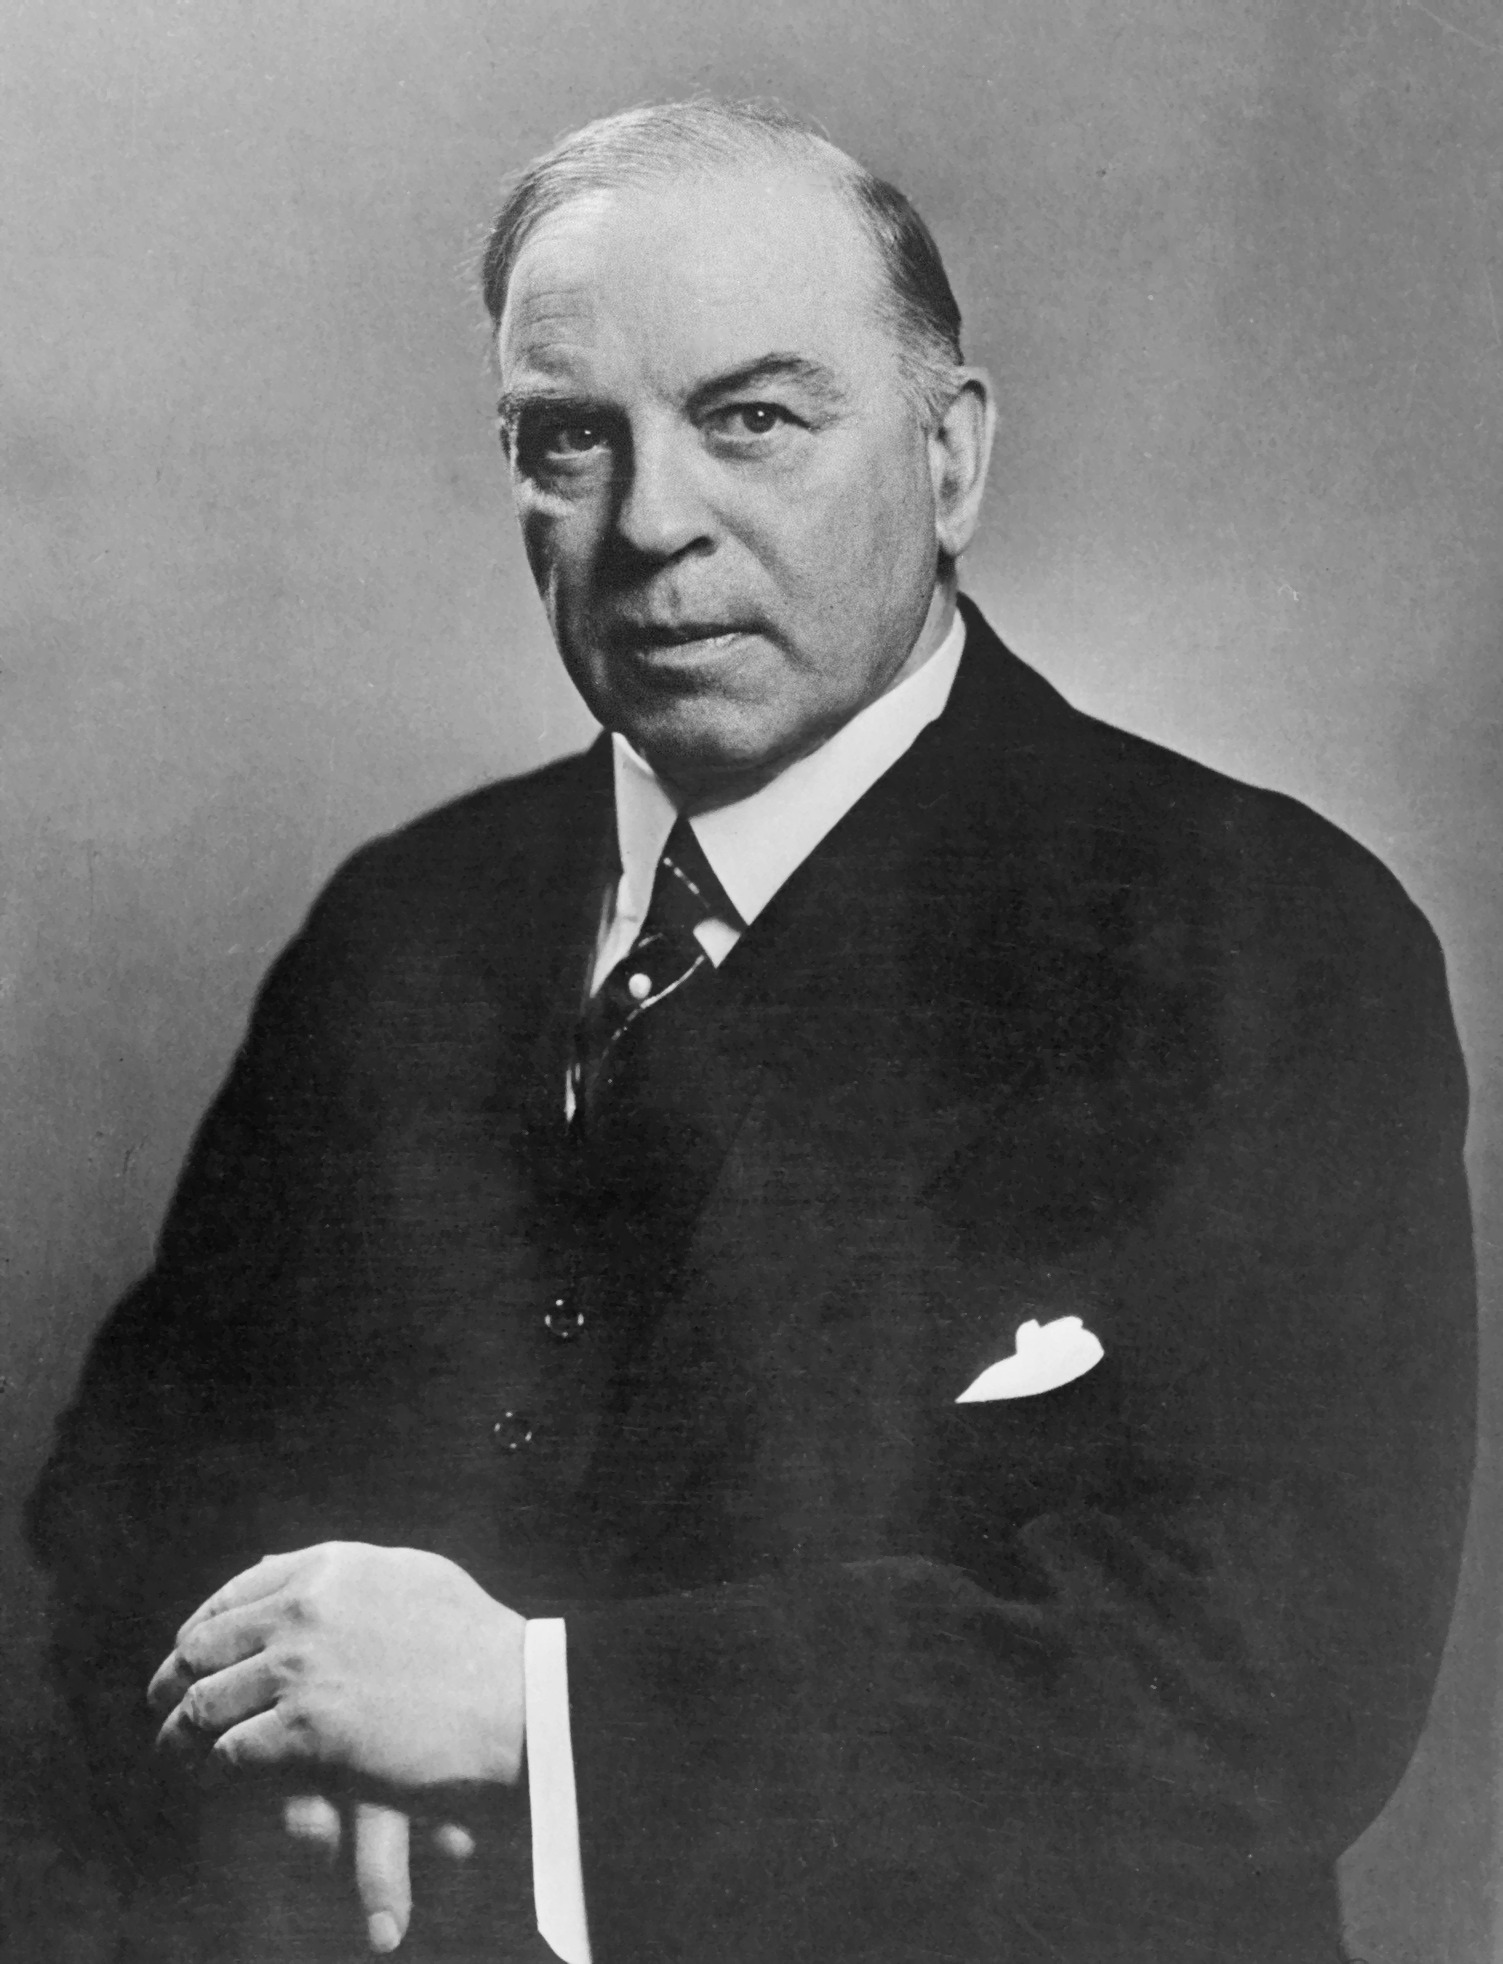 Essay: Mackenzie King – The Greatest Prime Minister of Canada